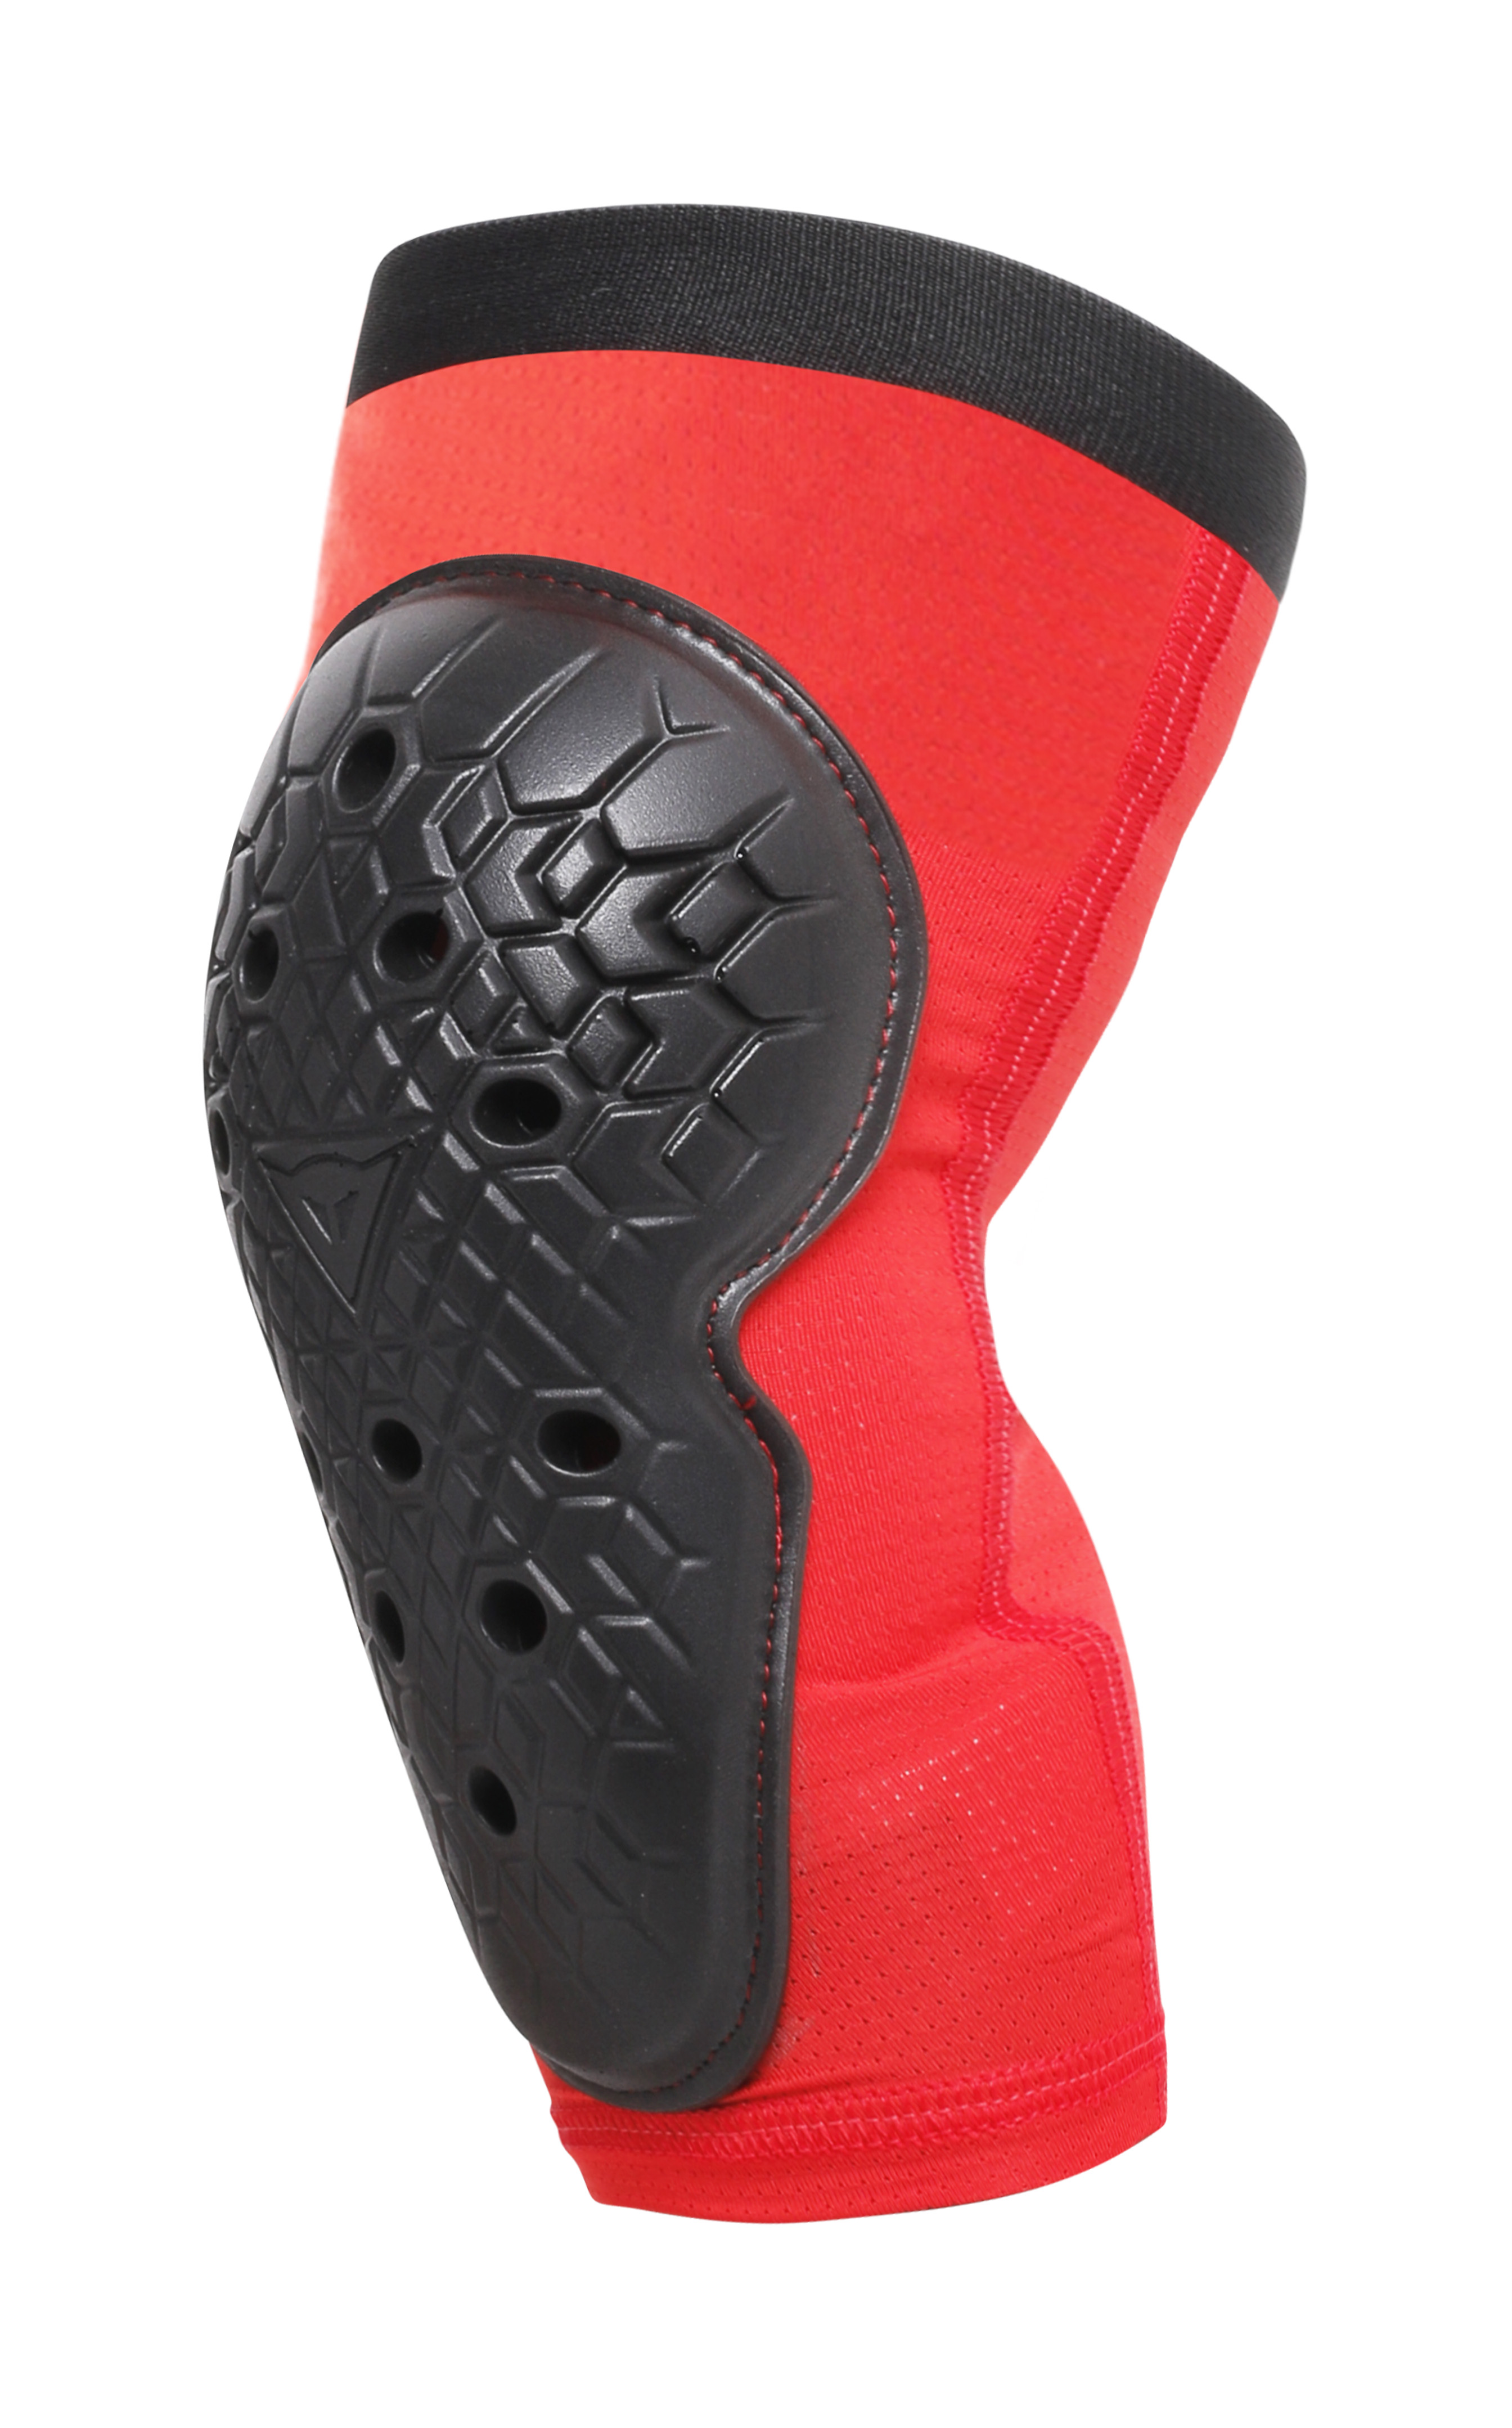 Dainese-Scarabeo-Juniour-Knee-Guards-Black-Red-L